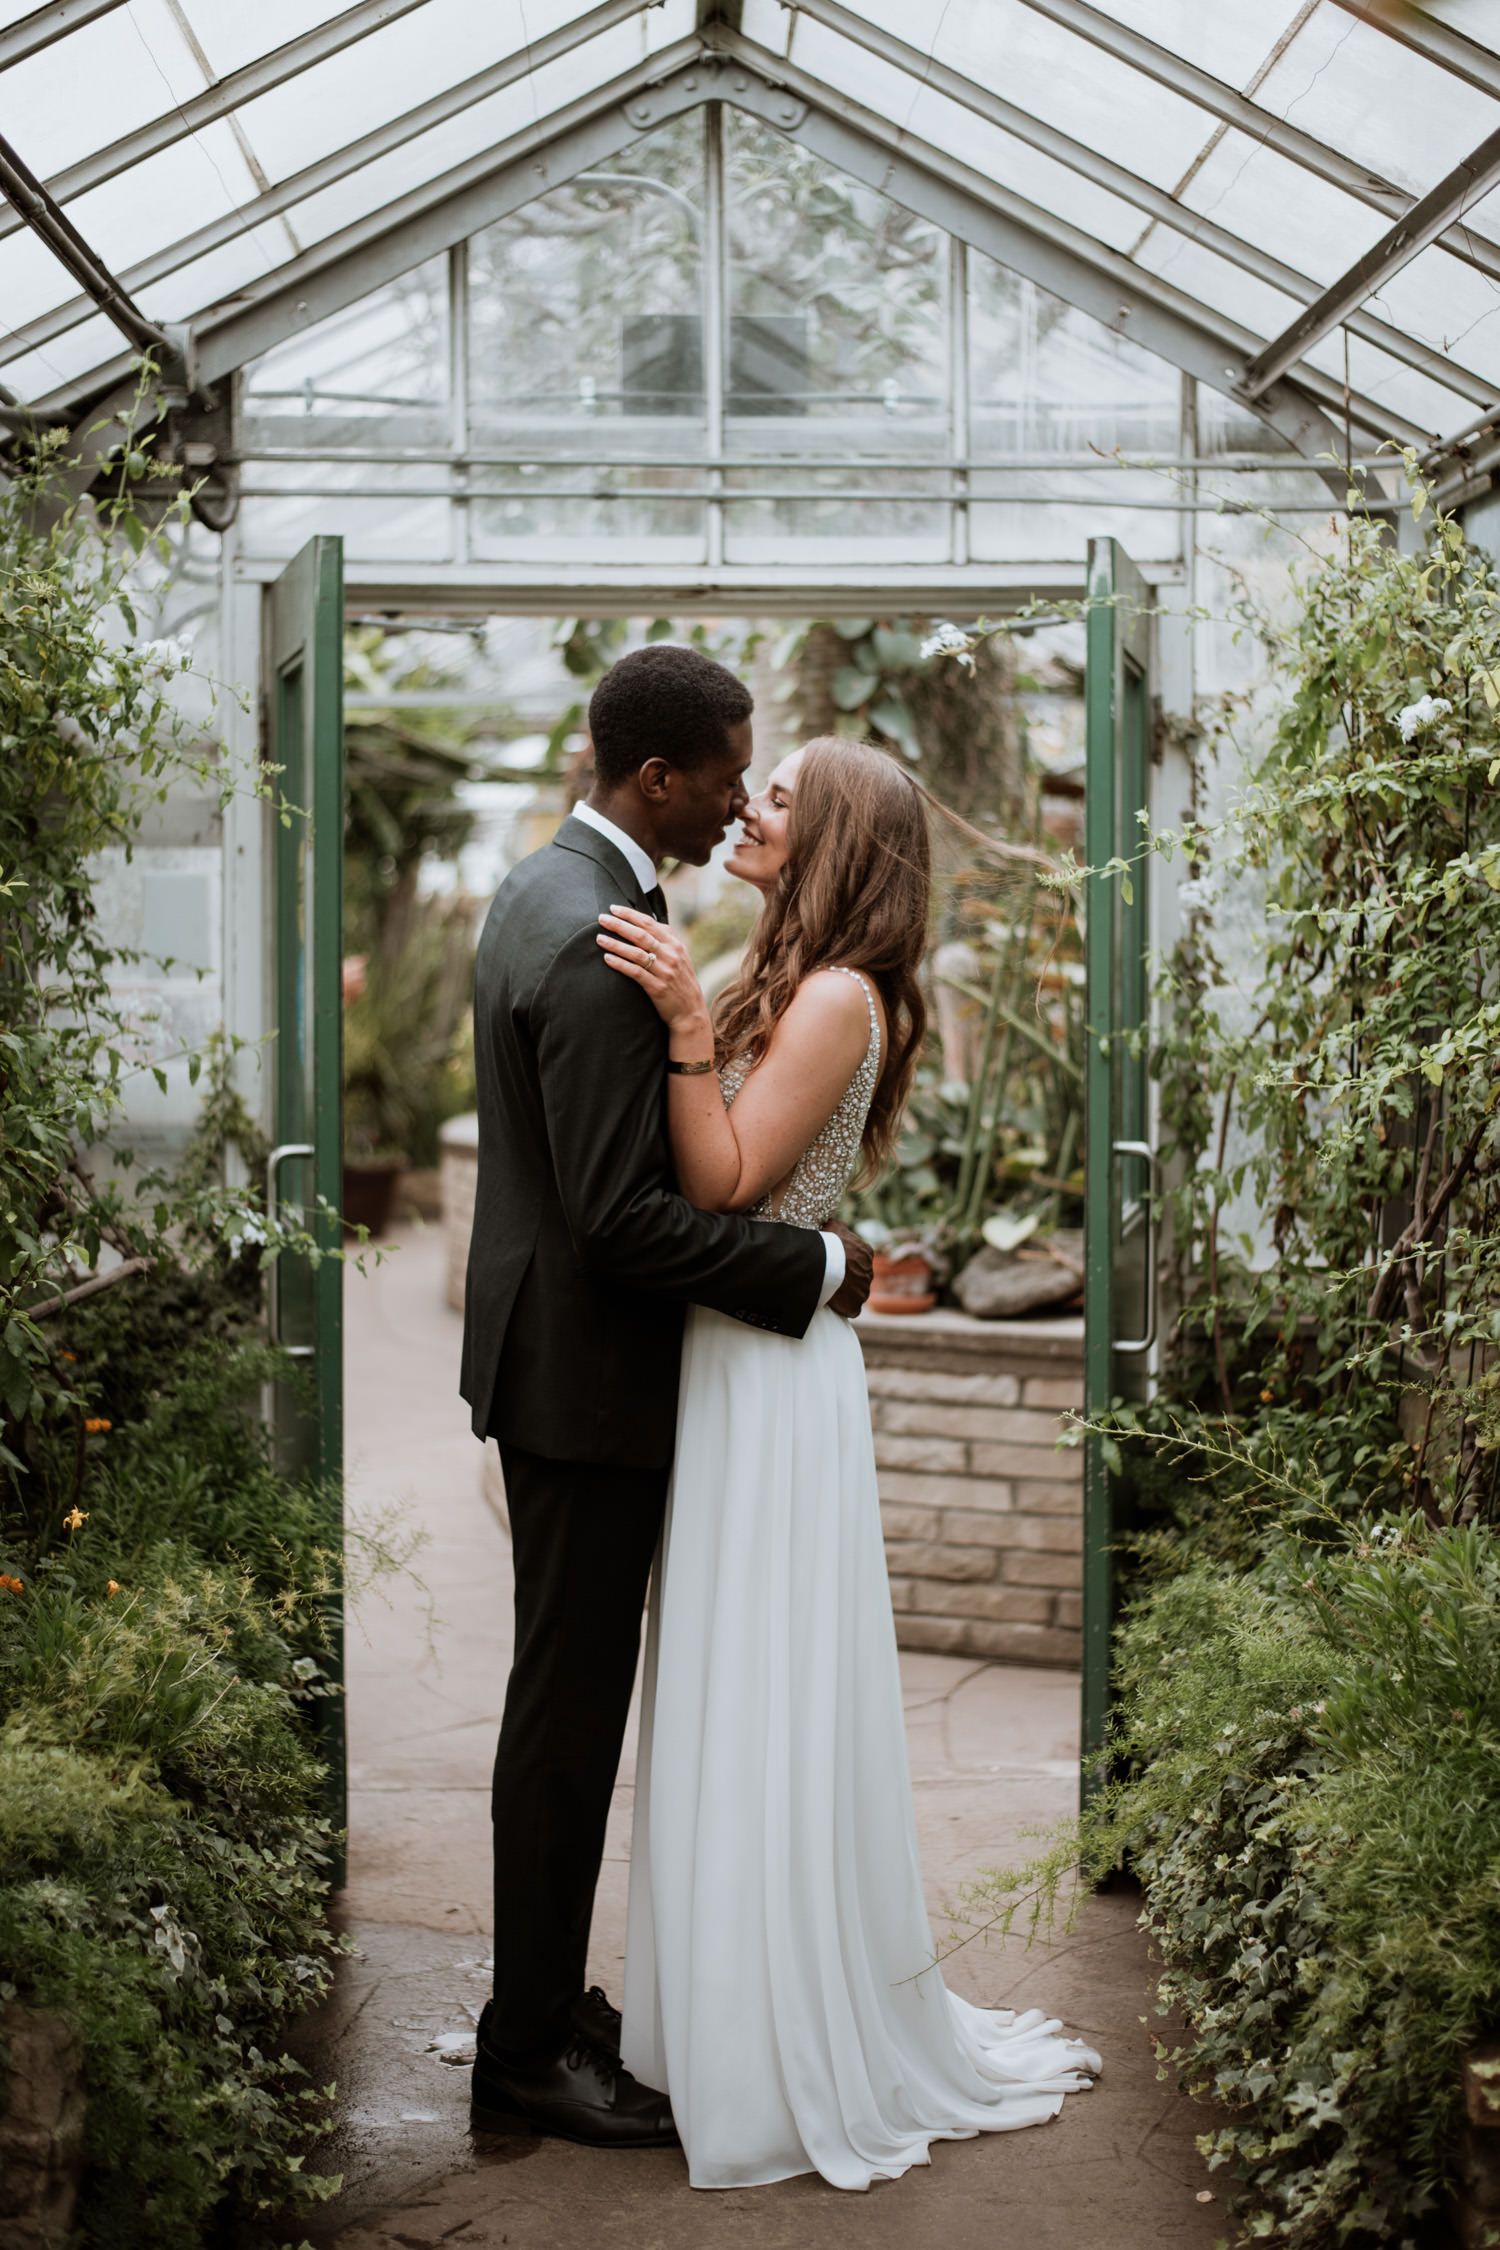 Allan gardens wedding photoshoot at the greenhouse